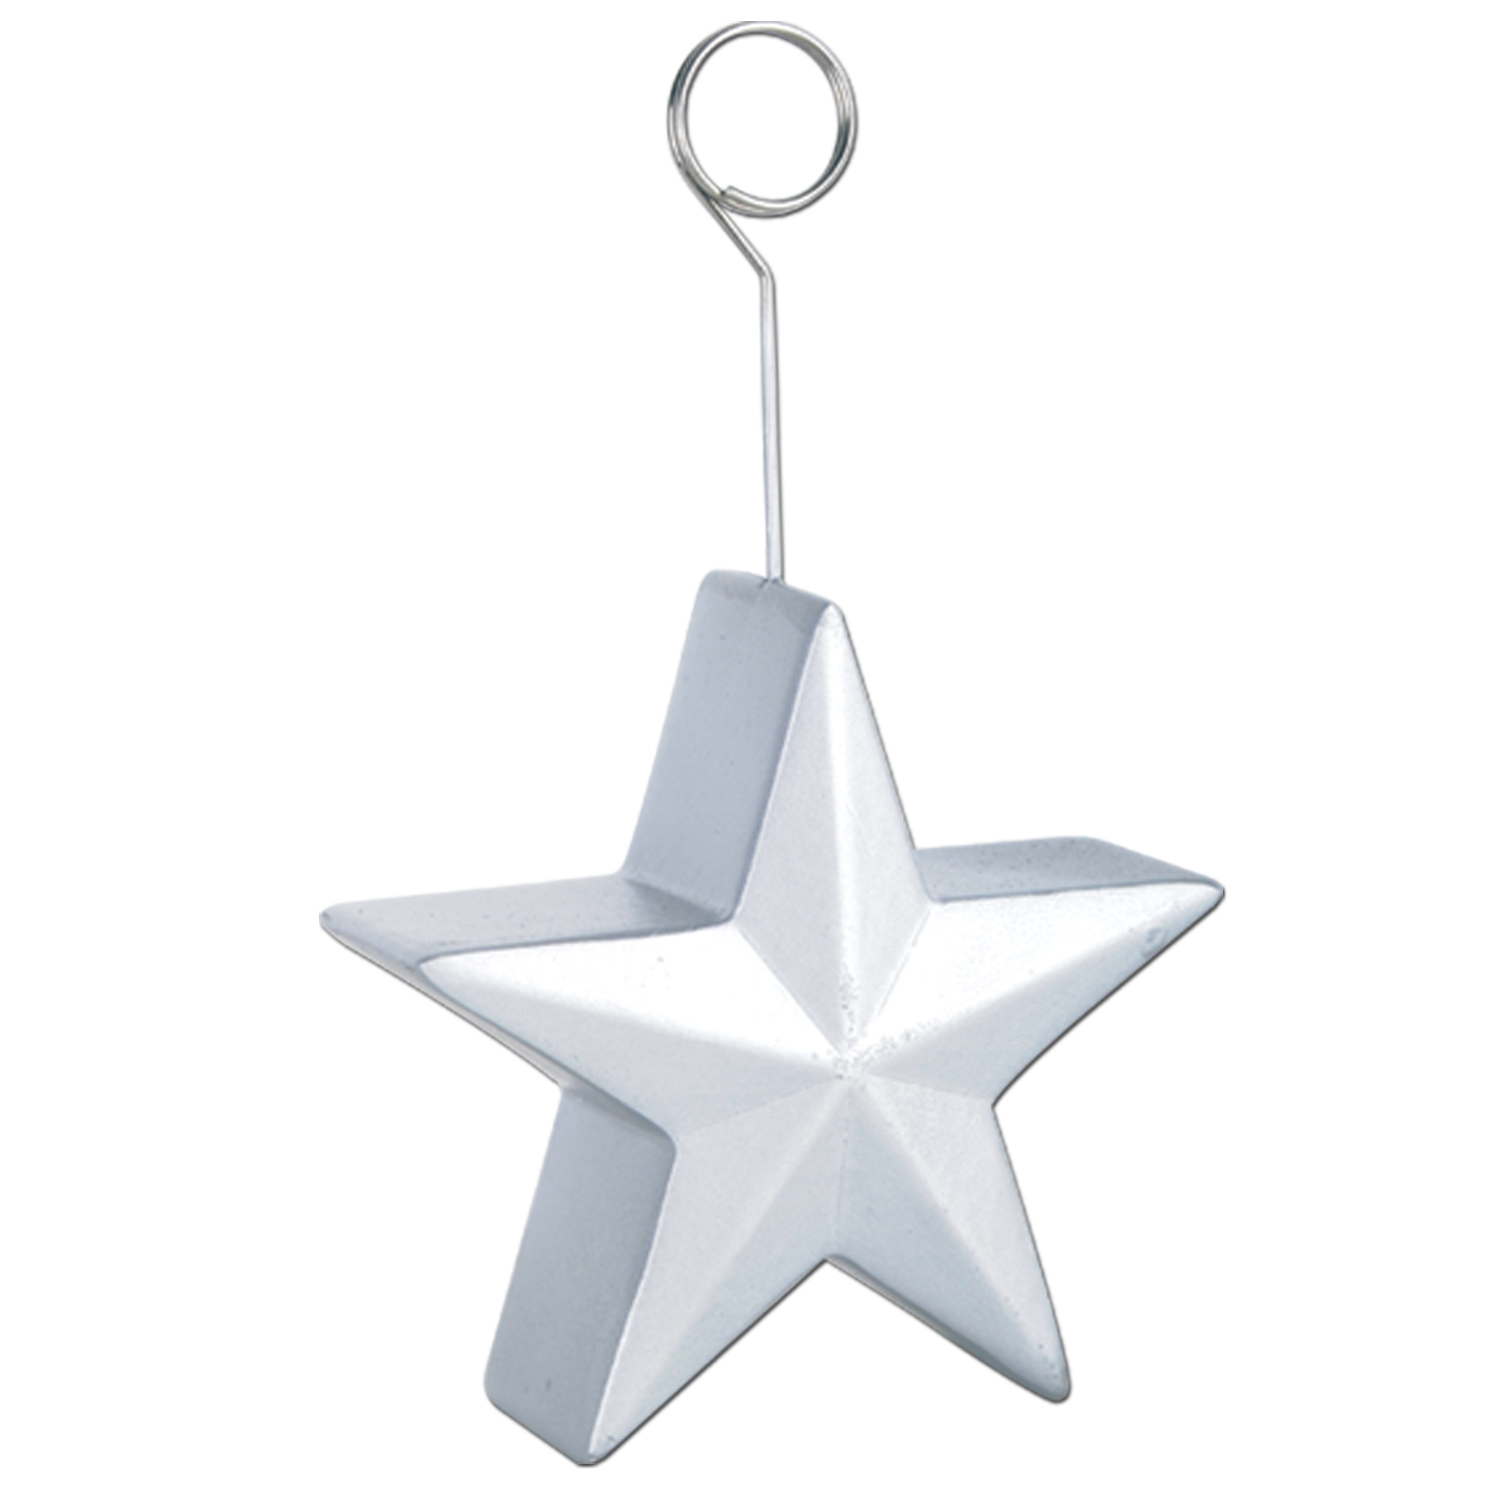 6oz Star Photo/Balloon Holders (Pack of 6) Stars, Silver, Silver Stars, New Years Eve, NYE, Fourth of July, 4th of July, Patriotic, Red, White, Blue, Decor, Wholesale party decorations, Inexpensive party supplies, Cheap, Bulk, Photo Holders, Balloon Holders, Latex Balloons, Balloons